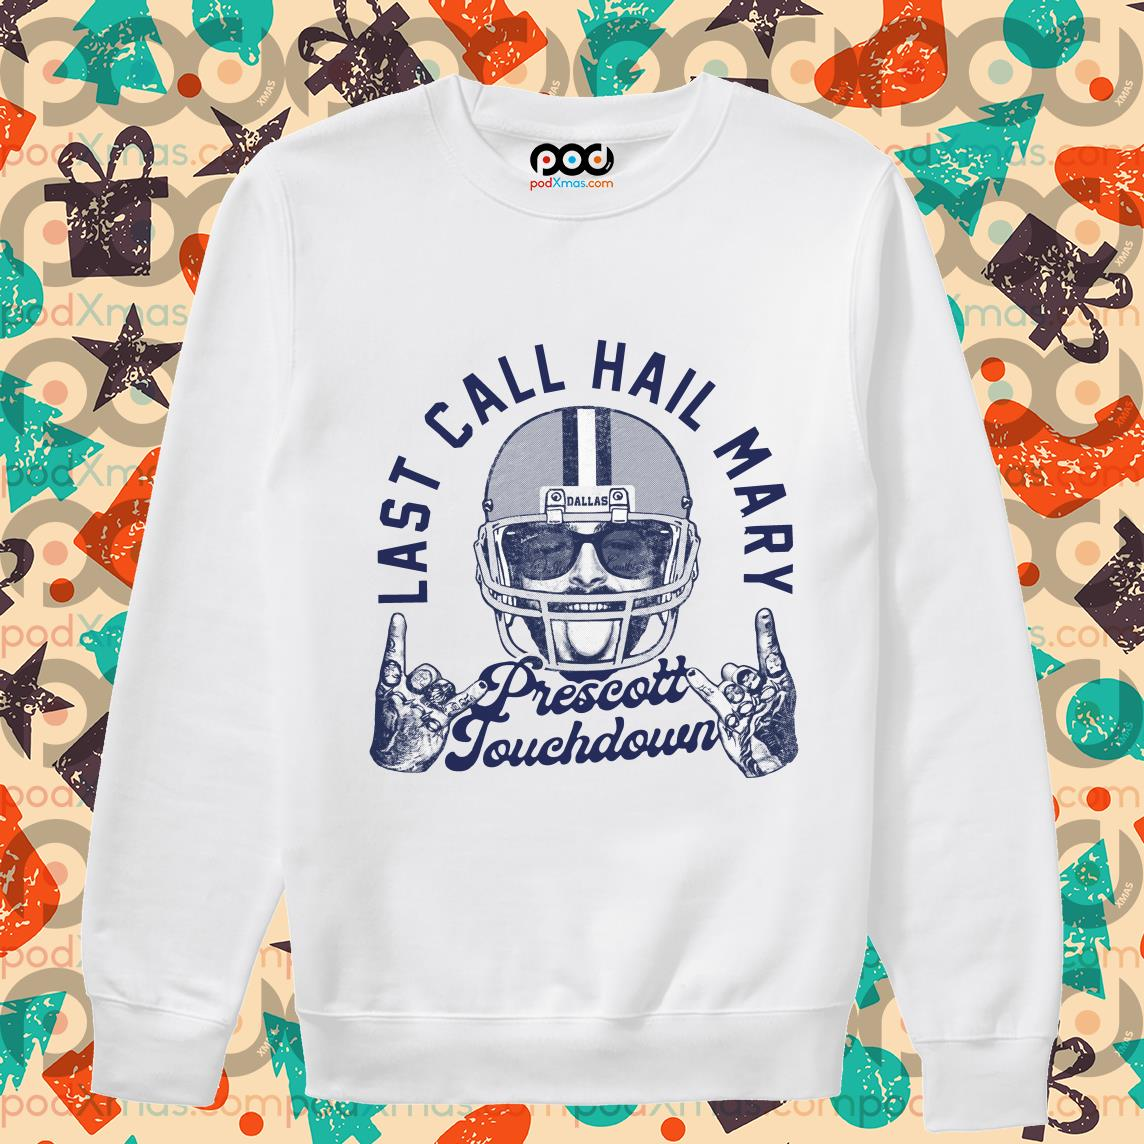 Post Malone Last call hail mary prescott touchdown sweater